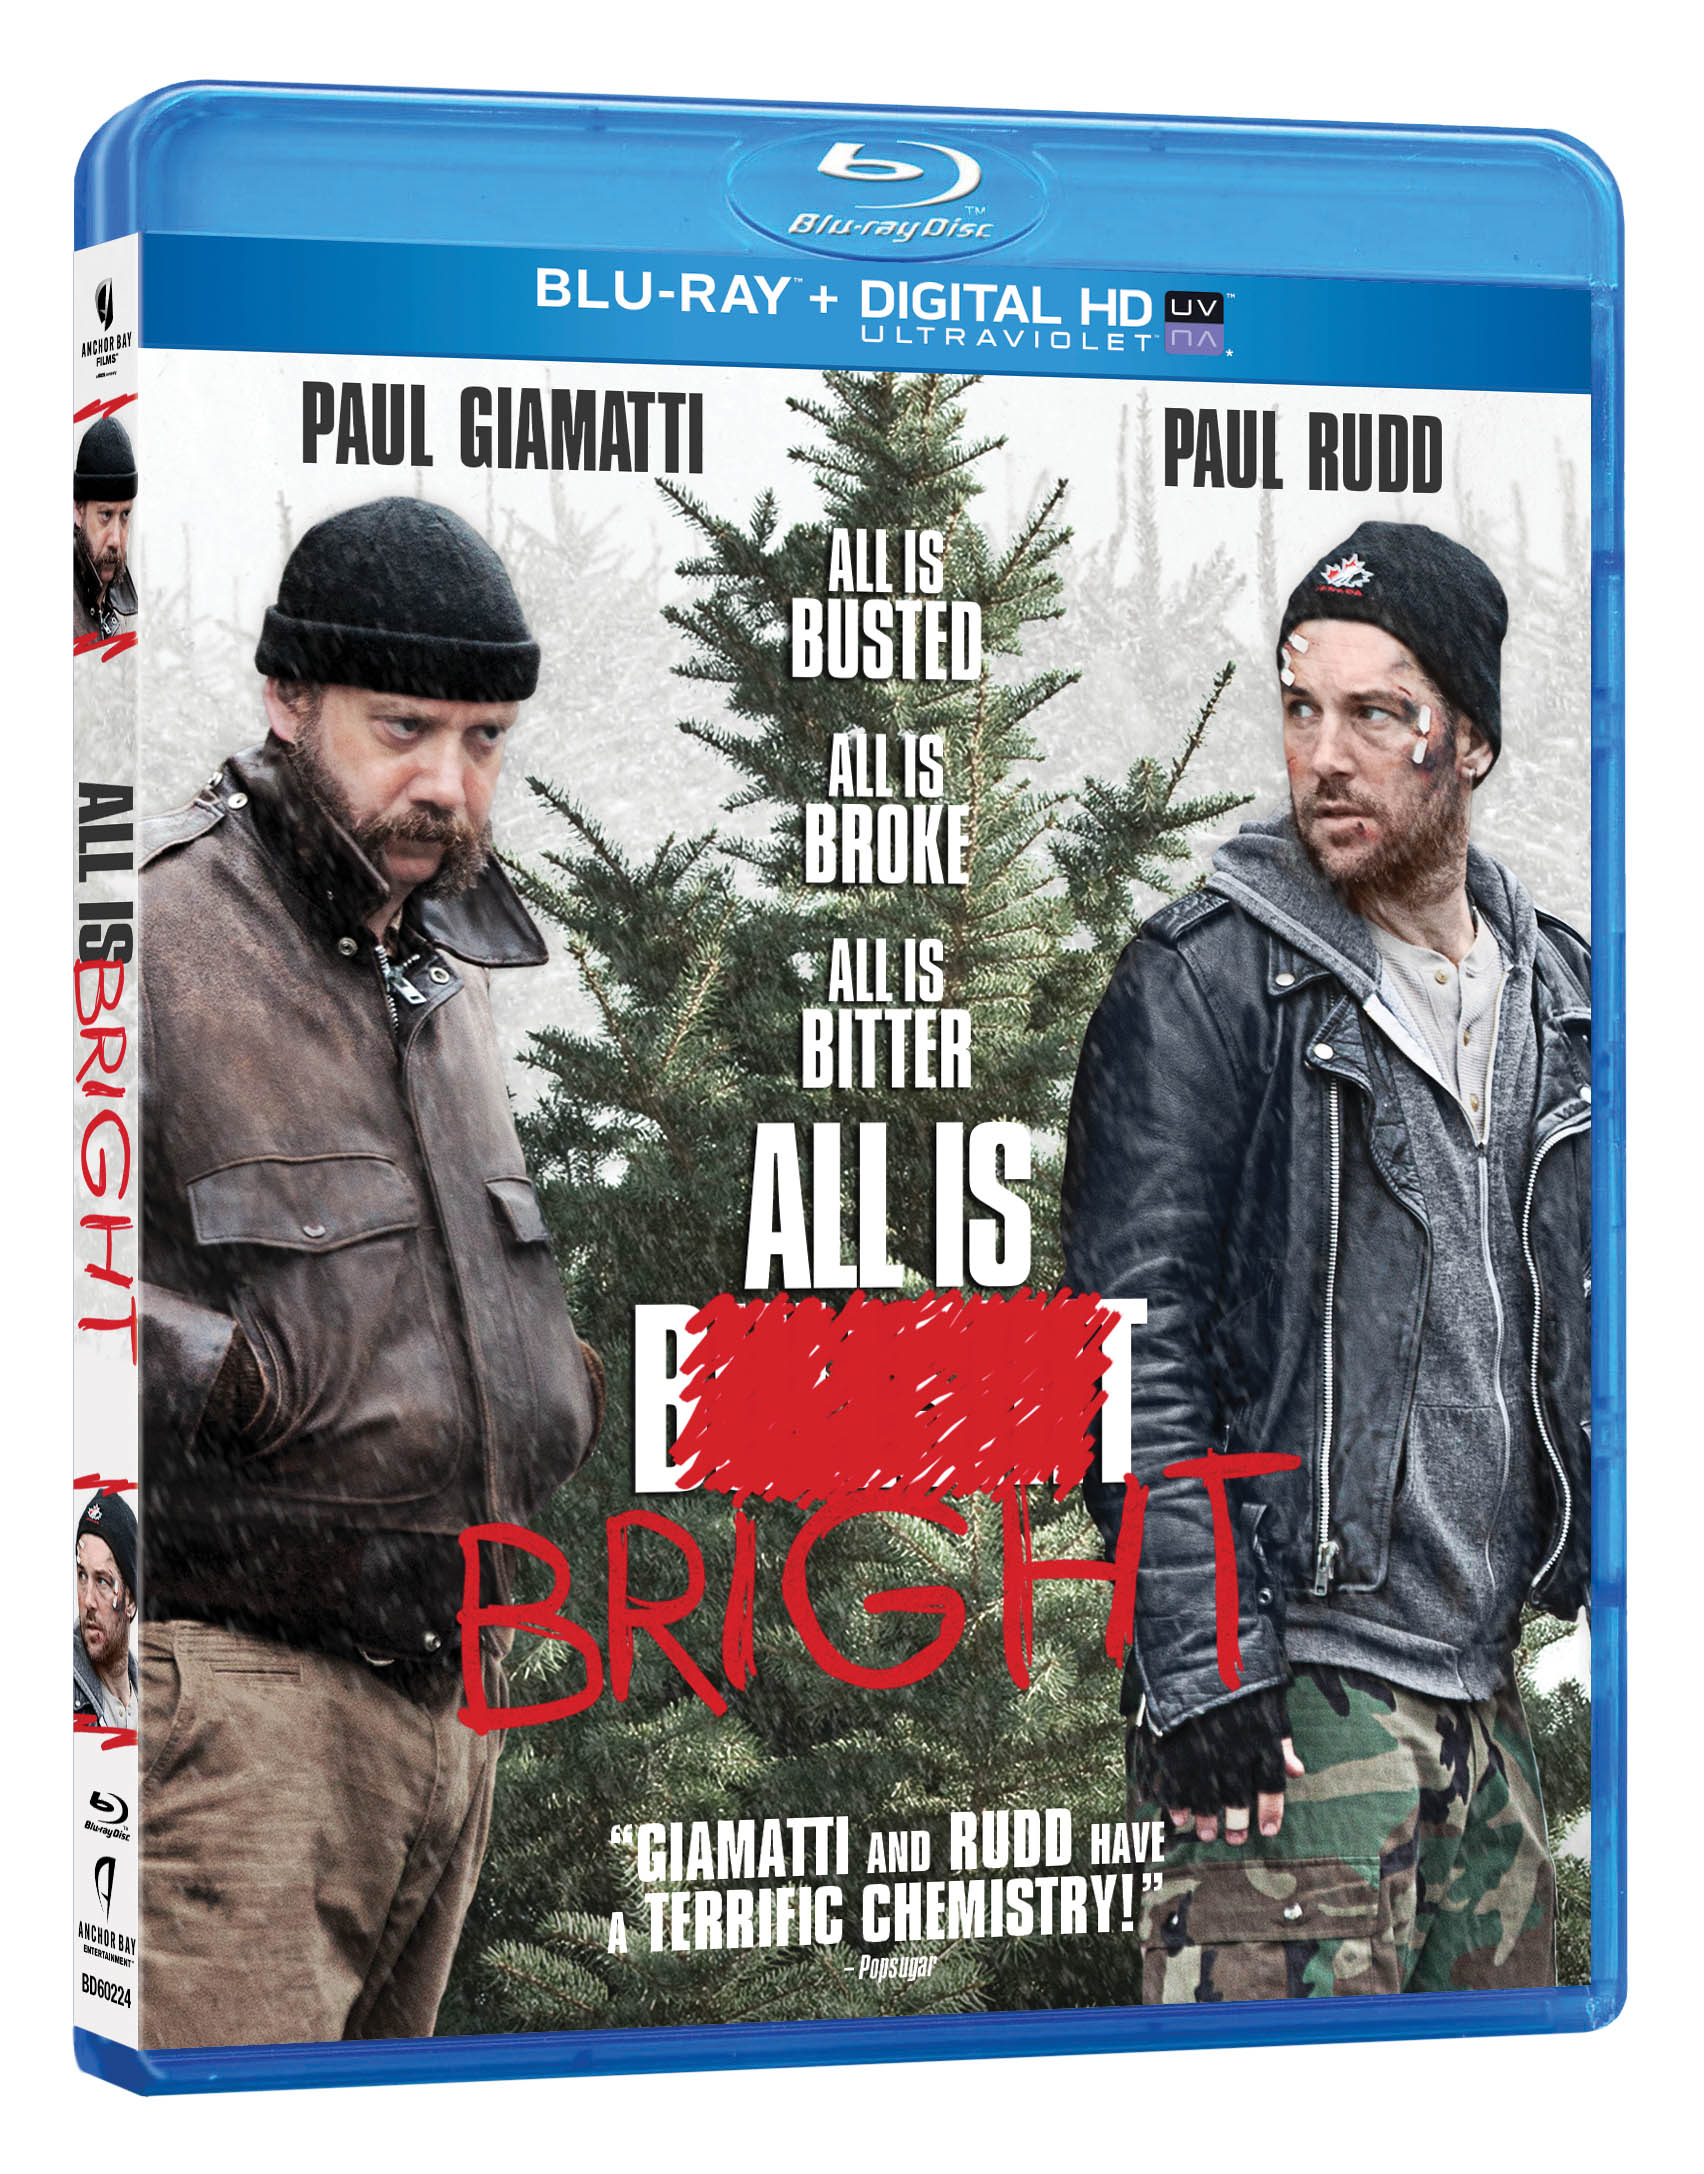 All is Bright Blu-ray Review